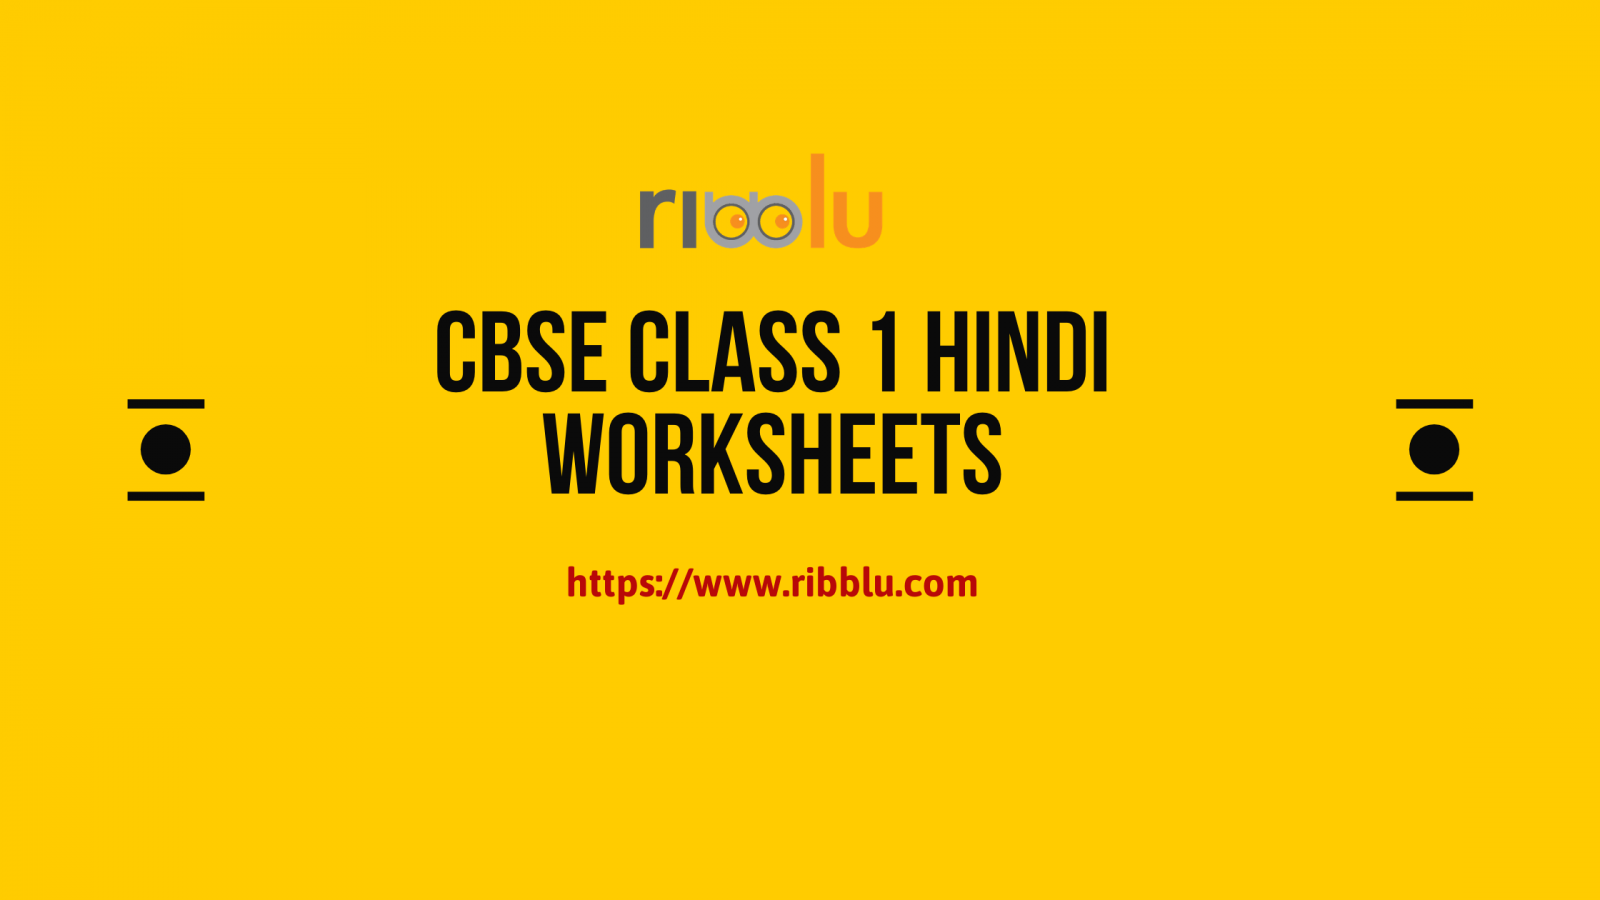 CBSE CLASS 1 HINDI WORKSHEETS